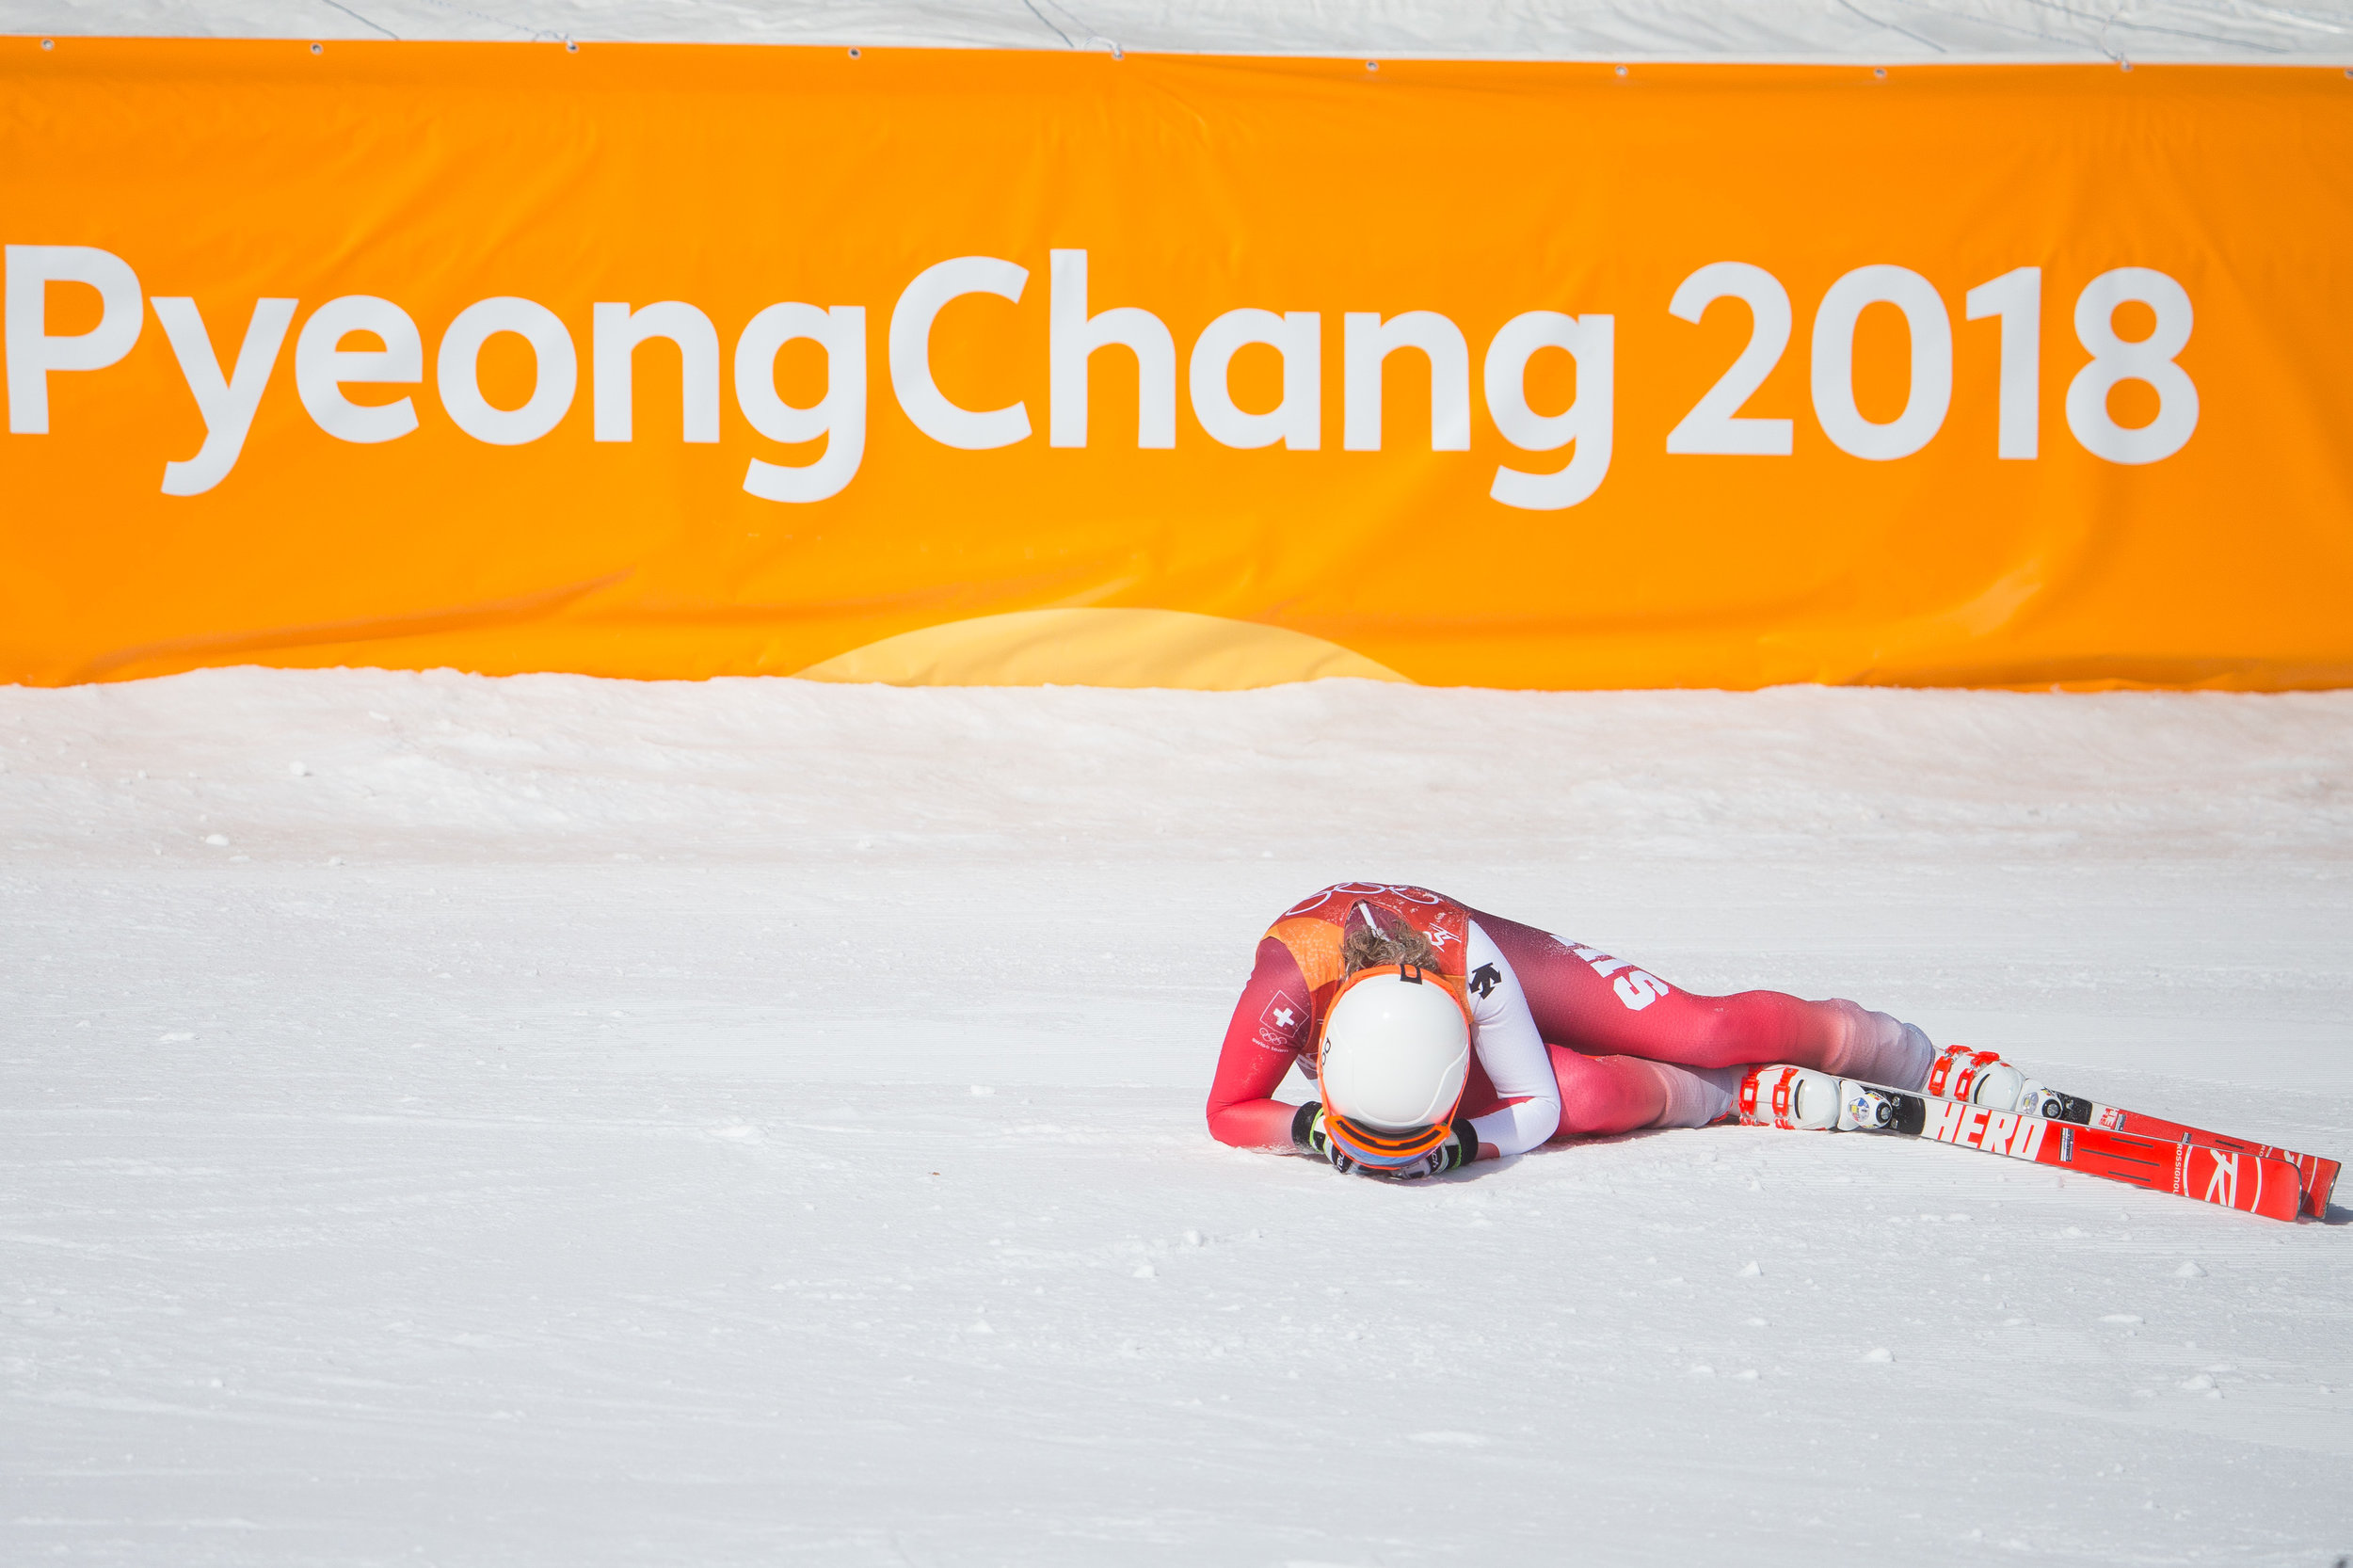 Michelle Gisin of Switzerland lays in the snow after sliding across the finish line of the Ladies' Downhill final at Jeongseon Alpine Center in Pyeongchang, South Korea on February 21, 2018. Photo by Matthew Healey/UPI